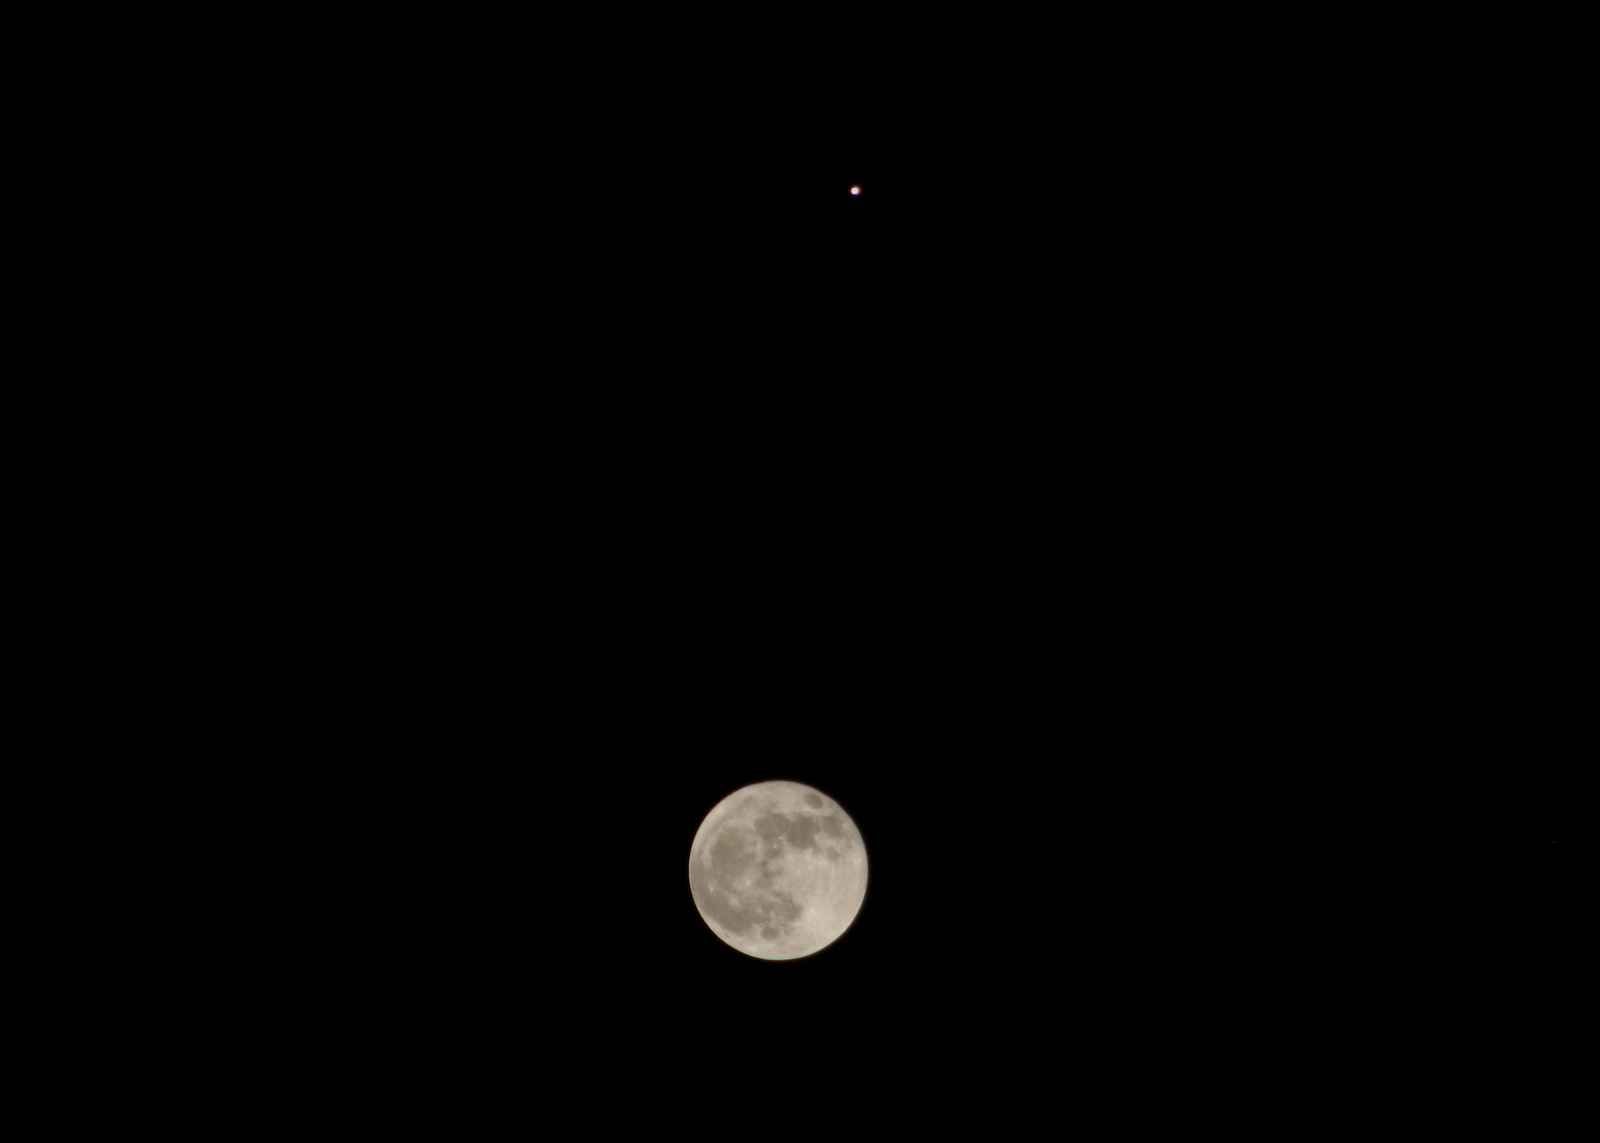 Photoshop composite moon jupiter conjunction